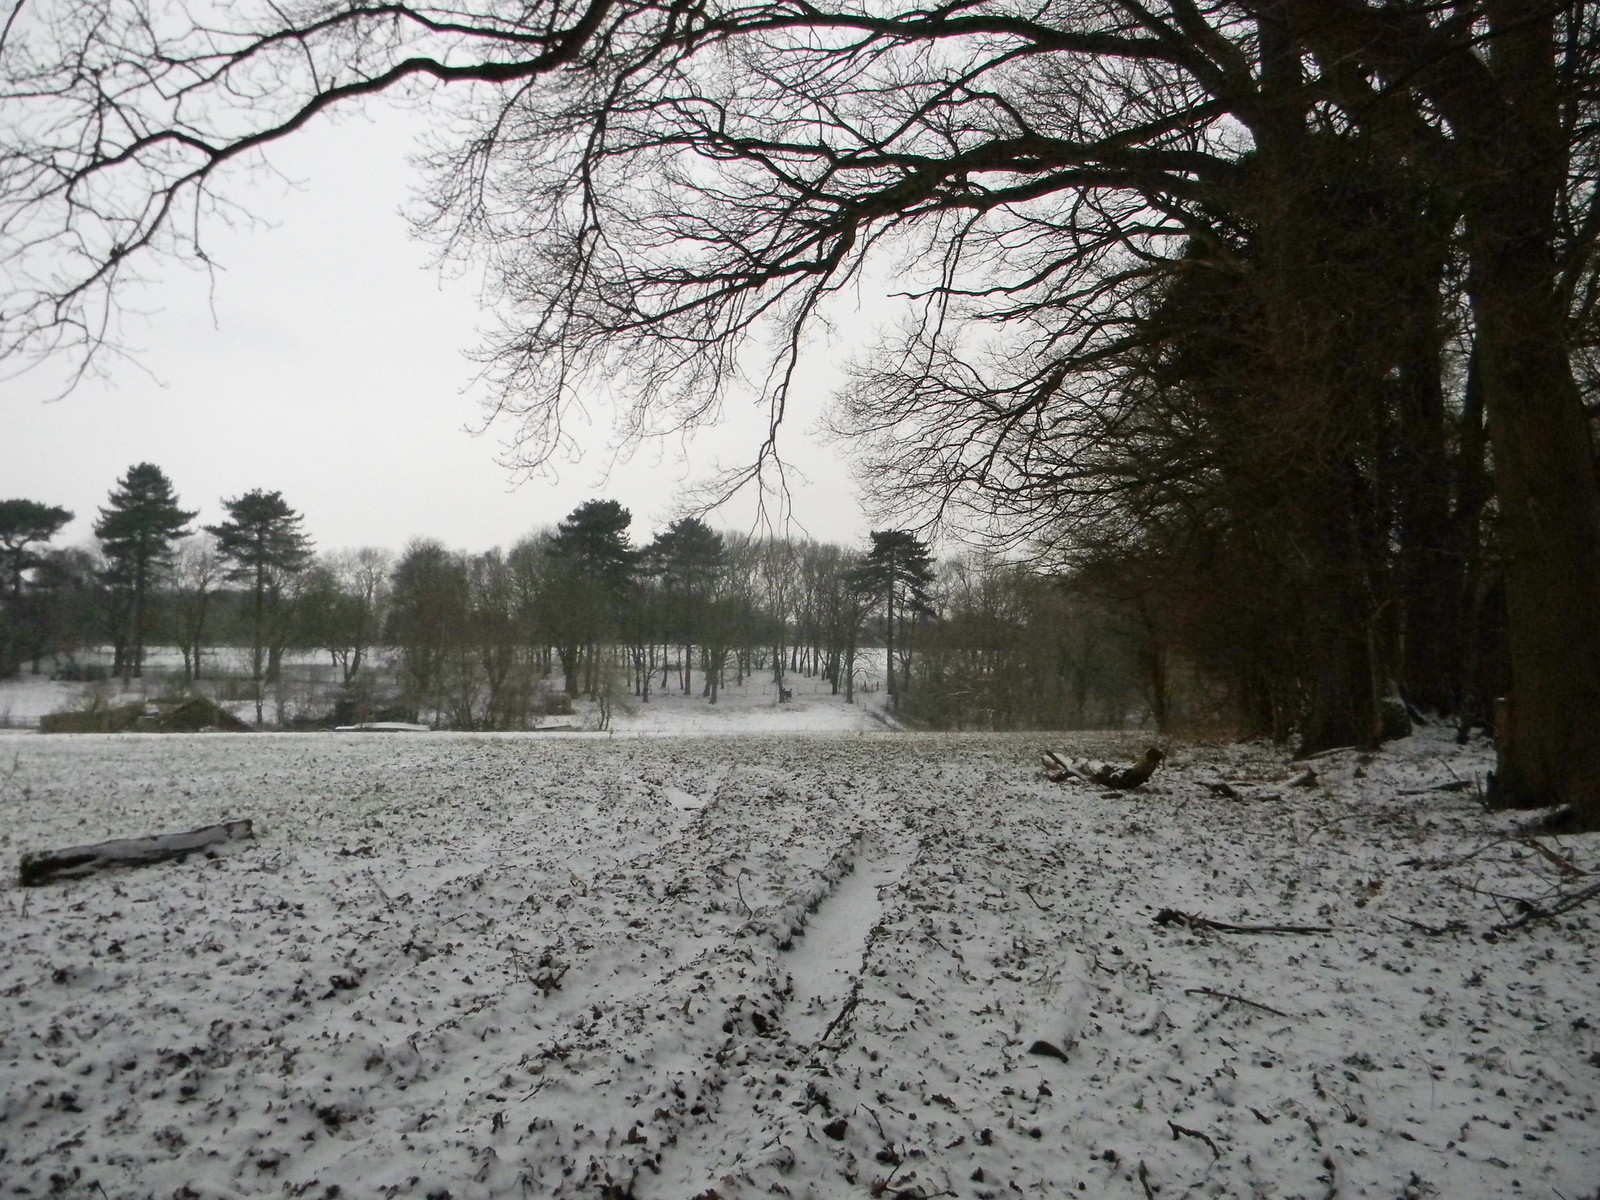 Another snowy field Snodland to Sole Street